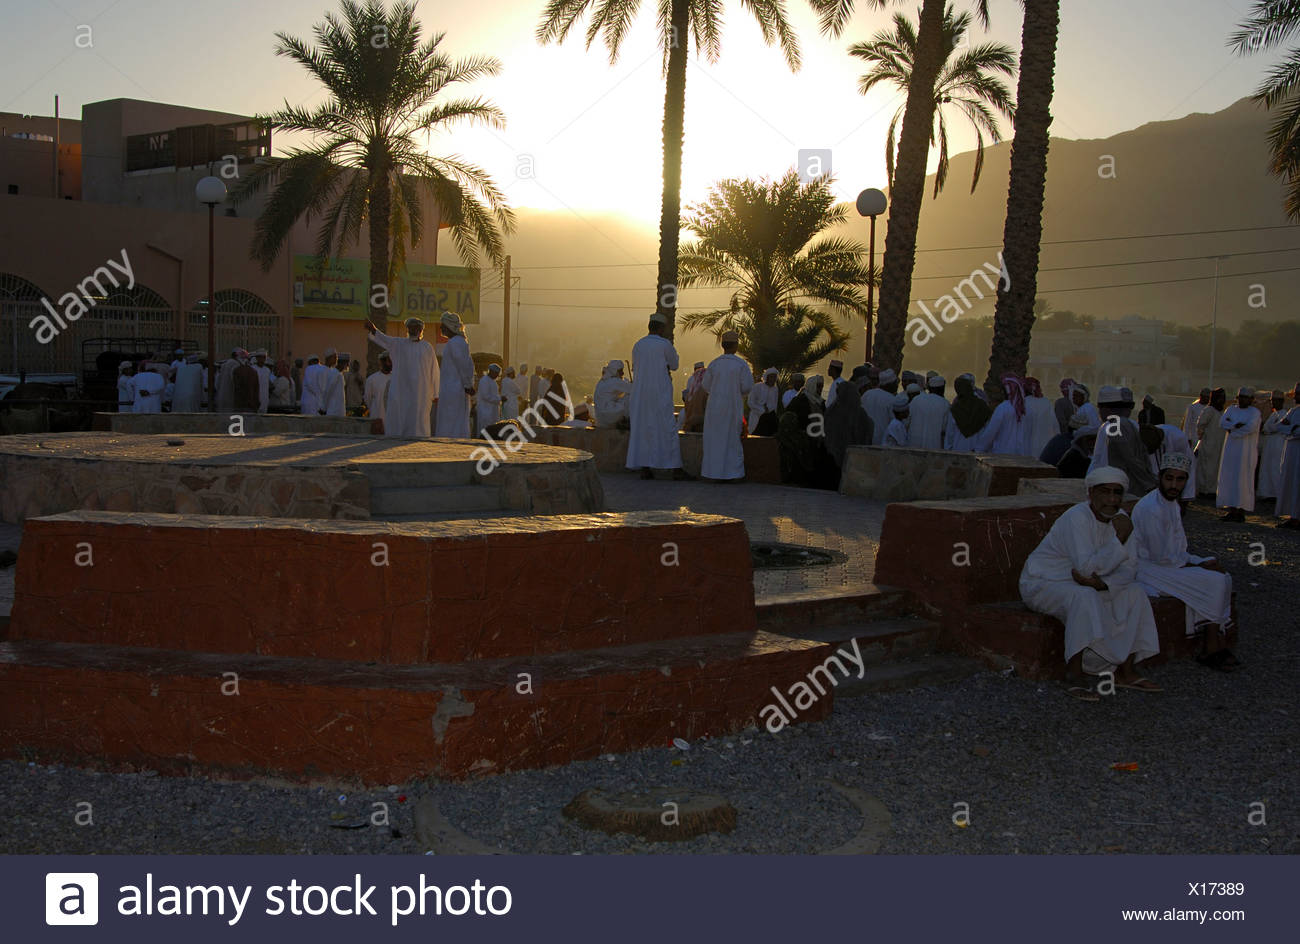 Early morning on the goat market in Nizwa, Sultanate of Oman - Stock Image